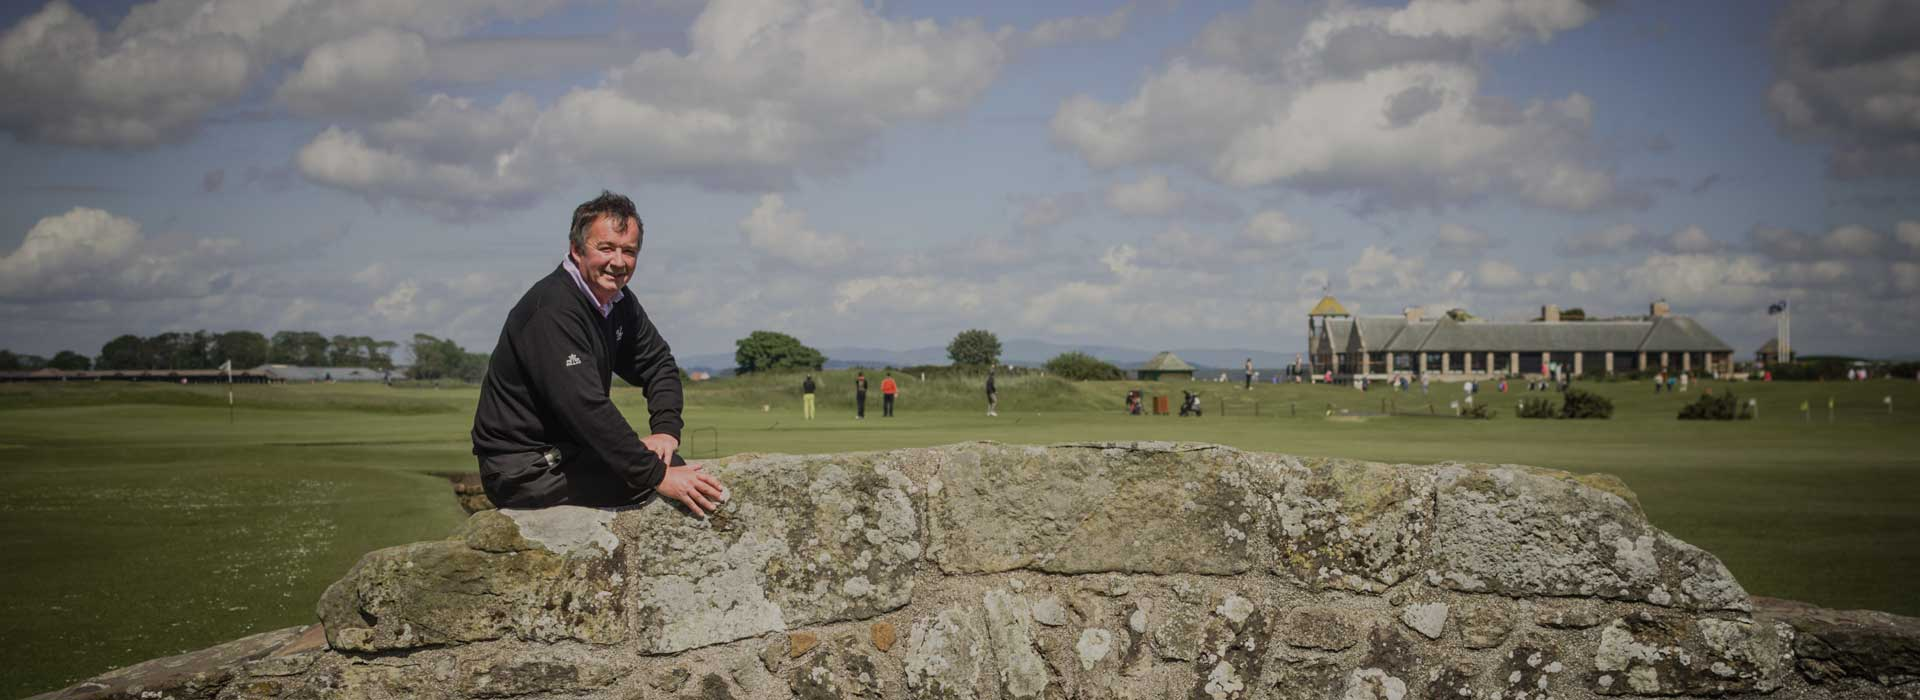 about-links-golf-st-andrews